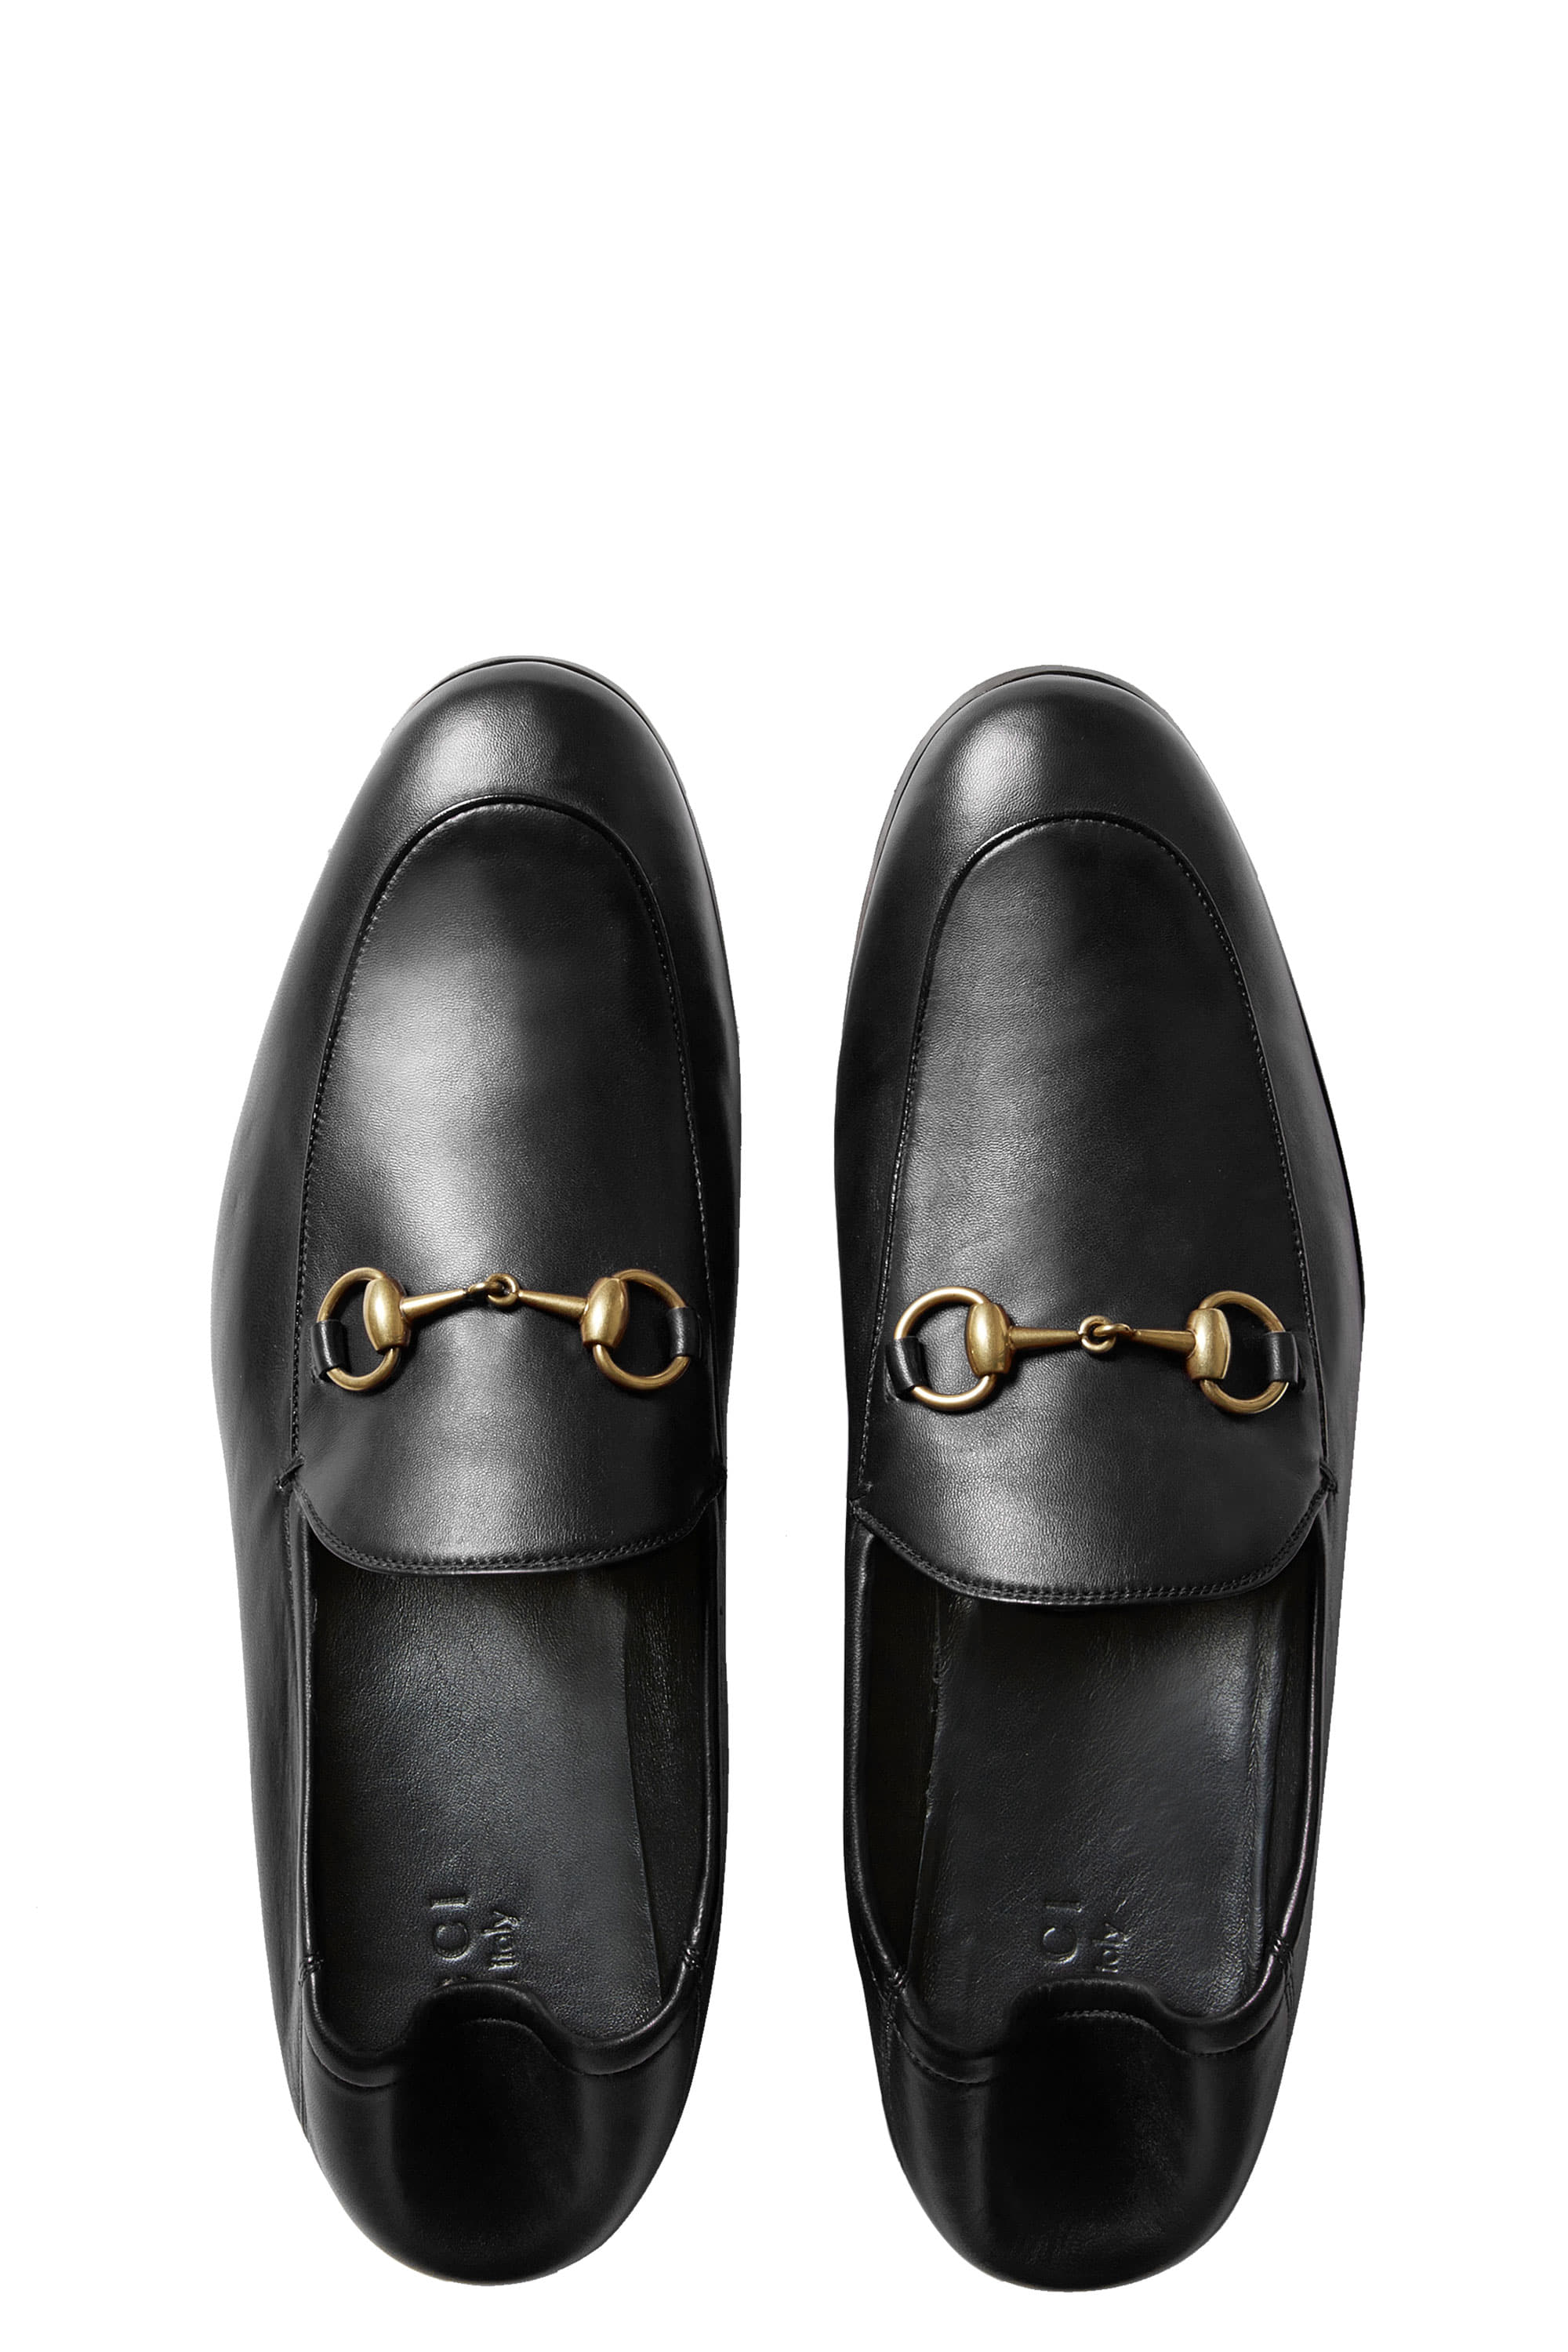 Horsebit Loafer -italy leather-